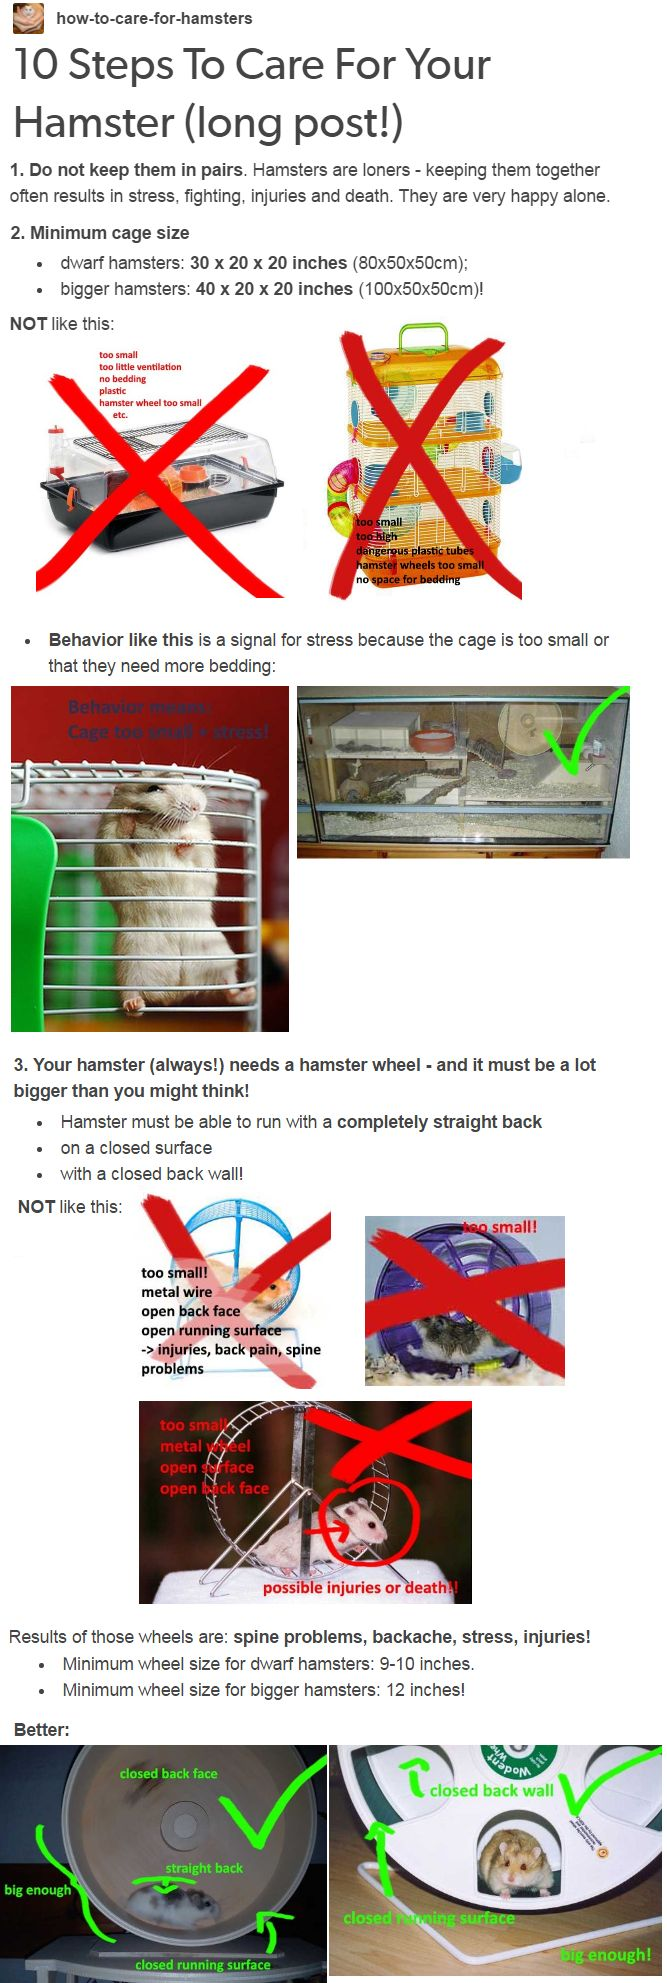 best 25+ hamsters ideas only on pinterest | cute hamsters, hamster